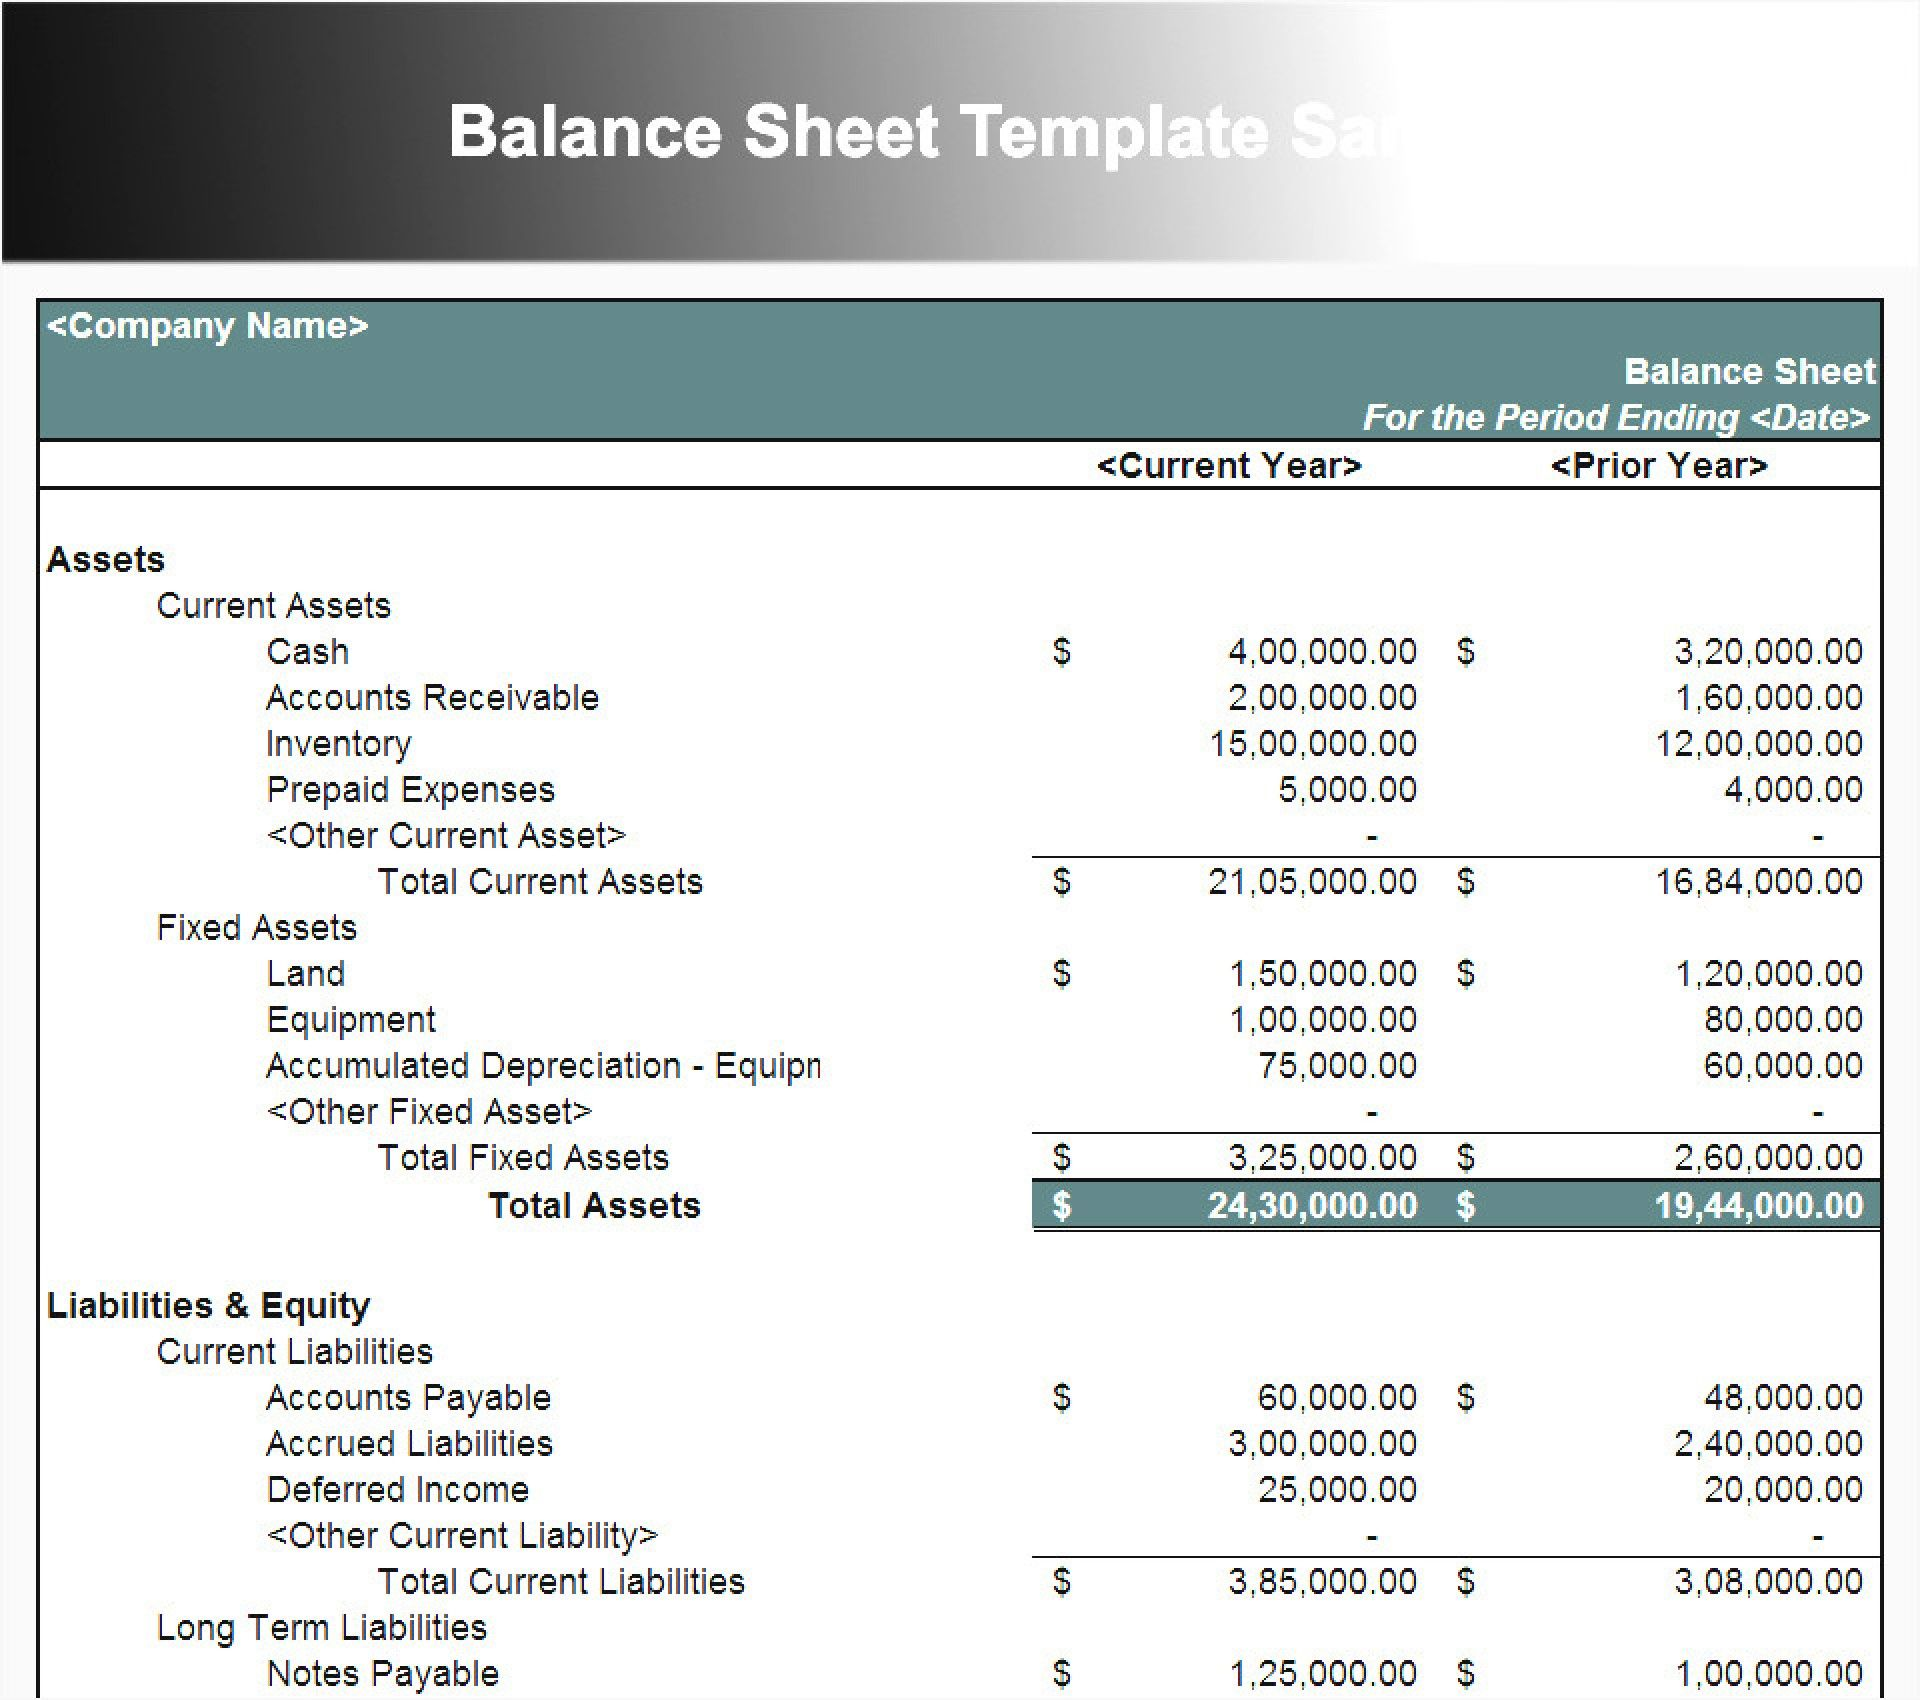 The Wonderful 006 Balance Sheet Template For Small Business Free 1920x1700 For Balance Sheet Template Budget Spreadsheet Template Excel Spreadsheets Templates